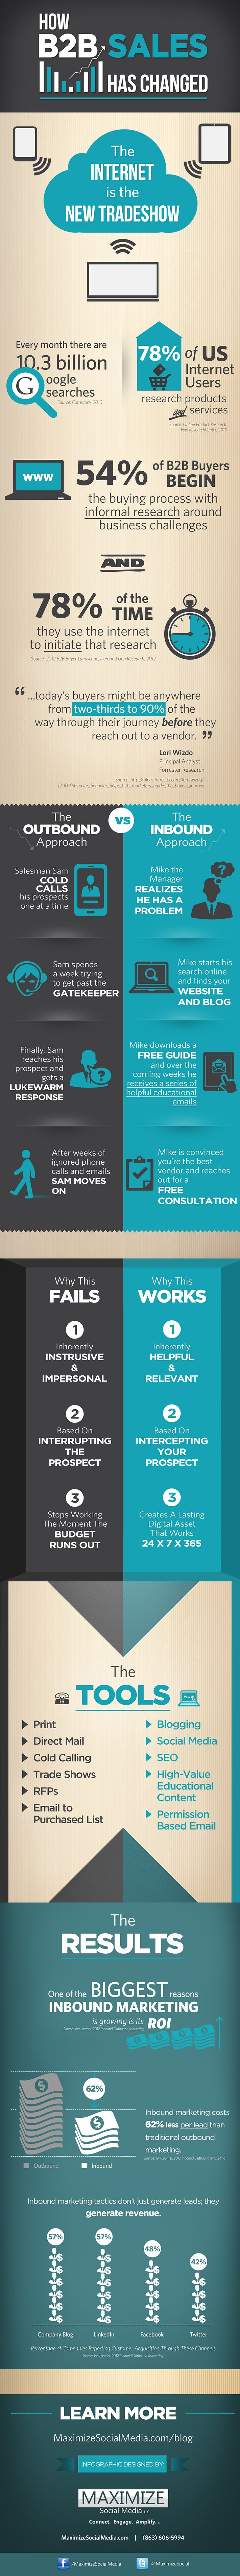 Internet is The New Trade Show - How Business-to-Business Marketing Has Changed [INFOGRAPHIC] www.seohoustonweb.com